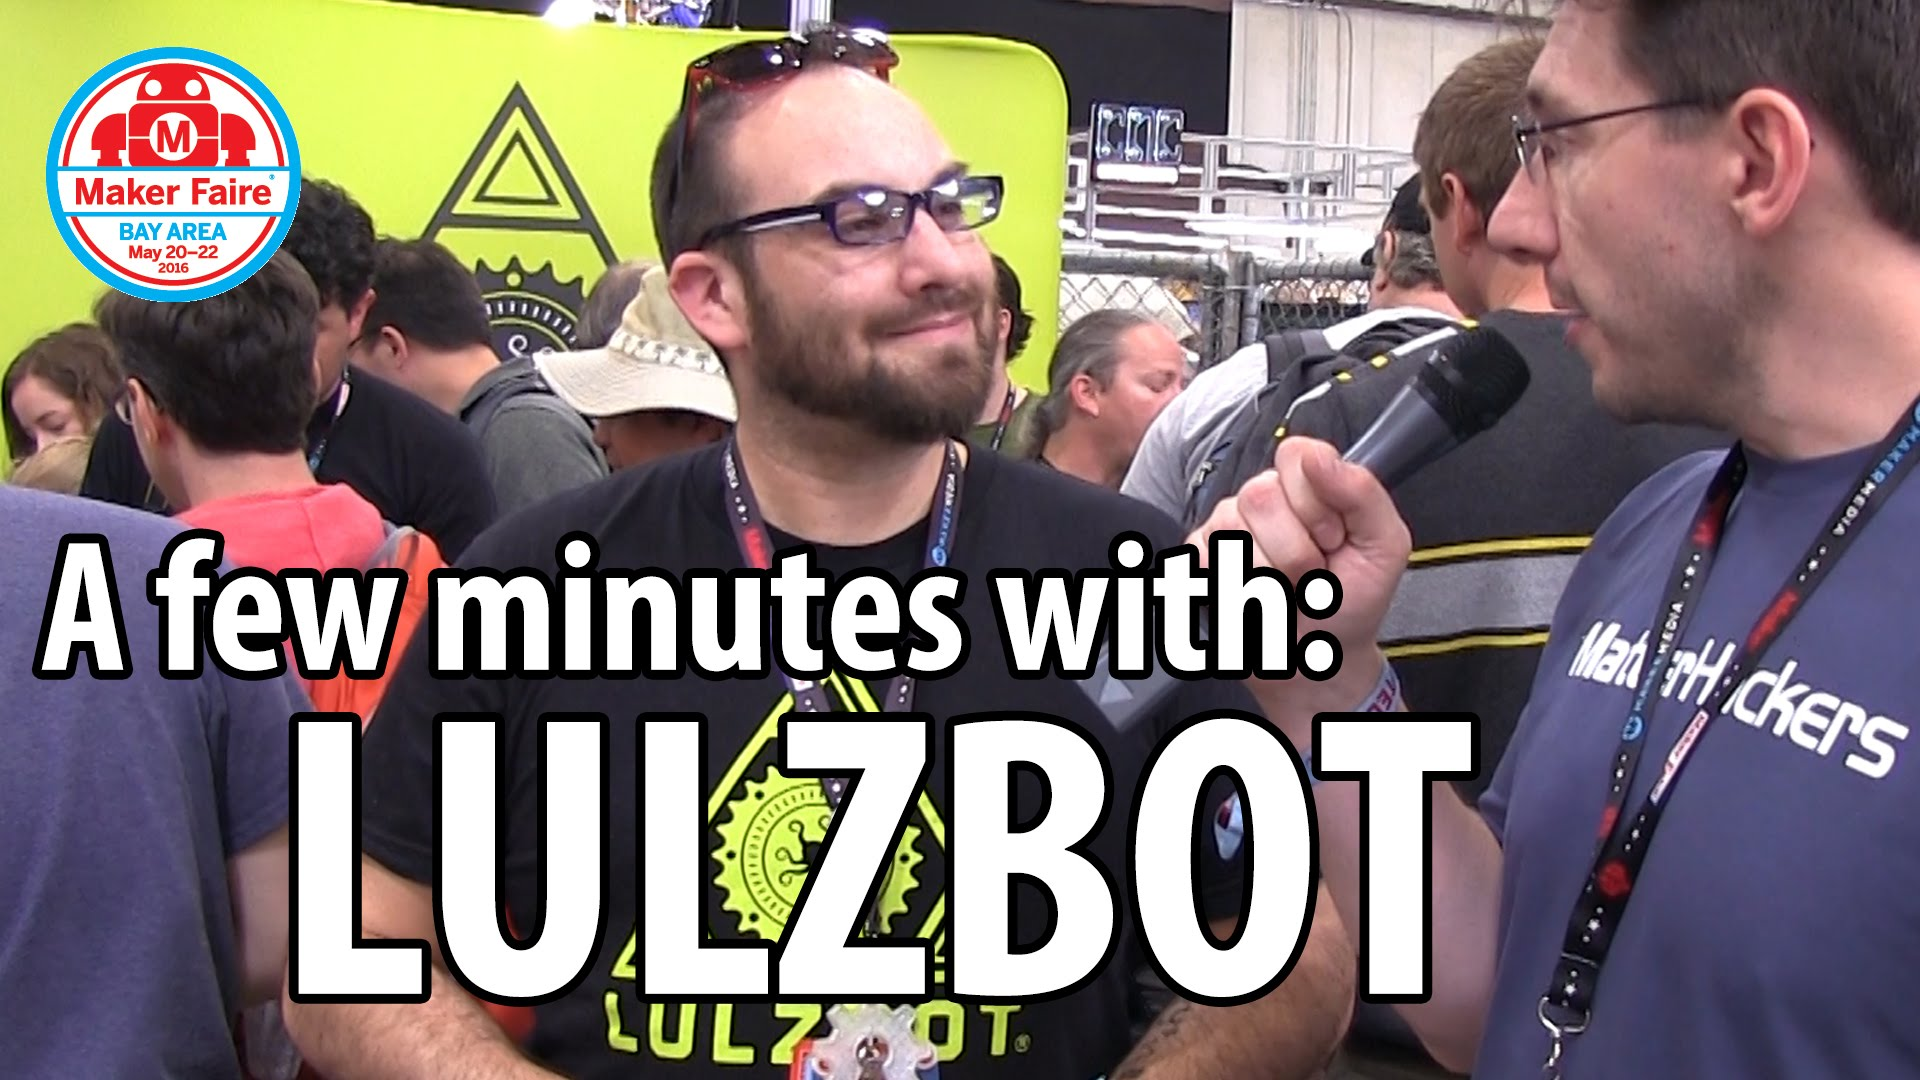 3D Printing: Lulzbot at Maker Faire 2016